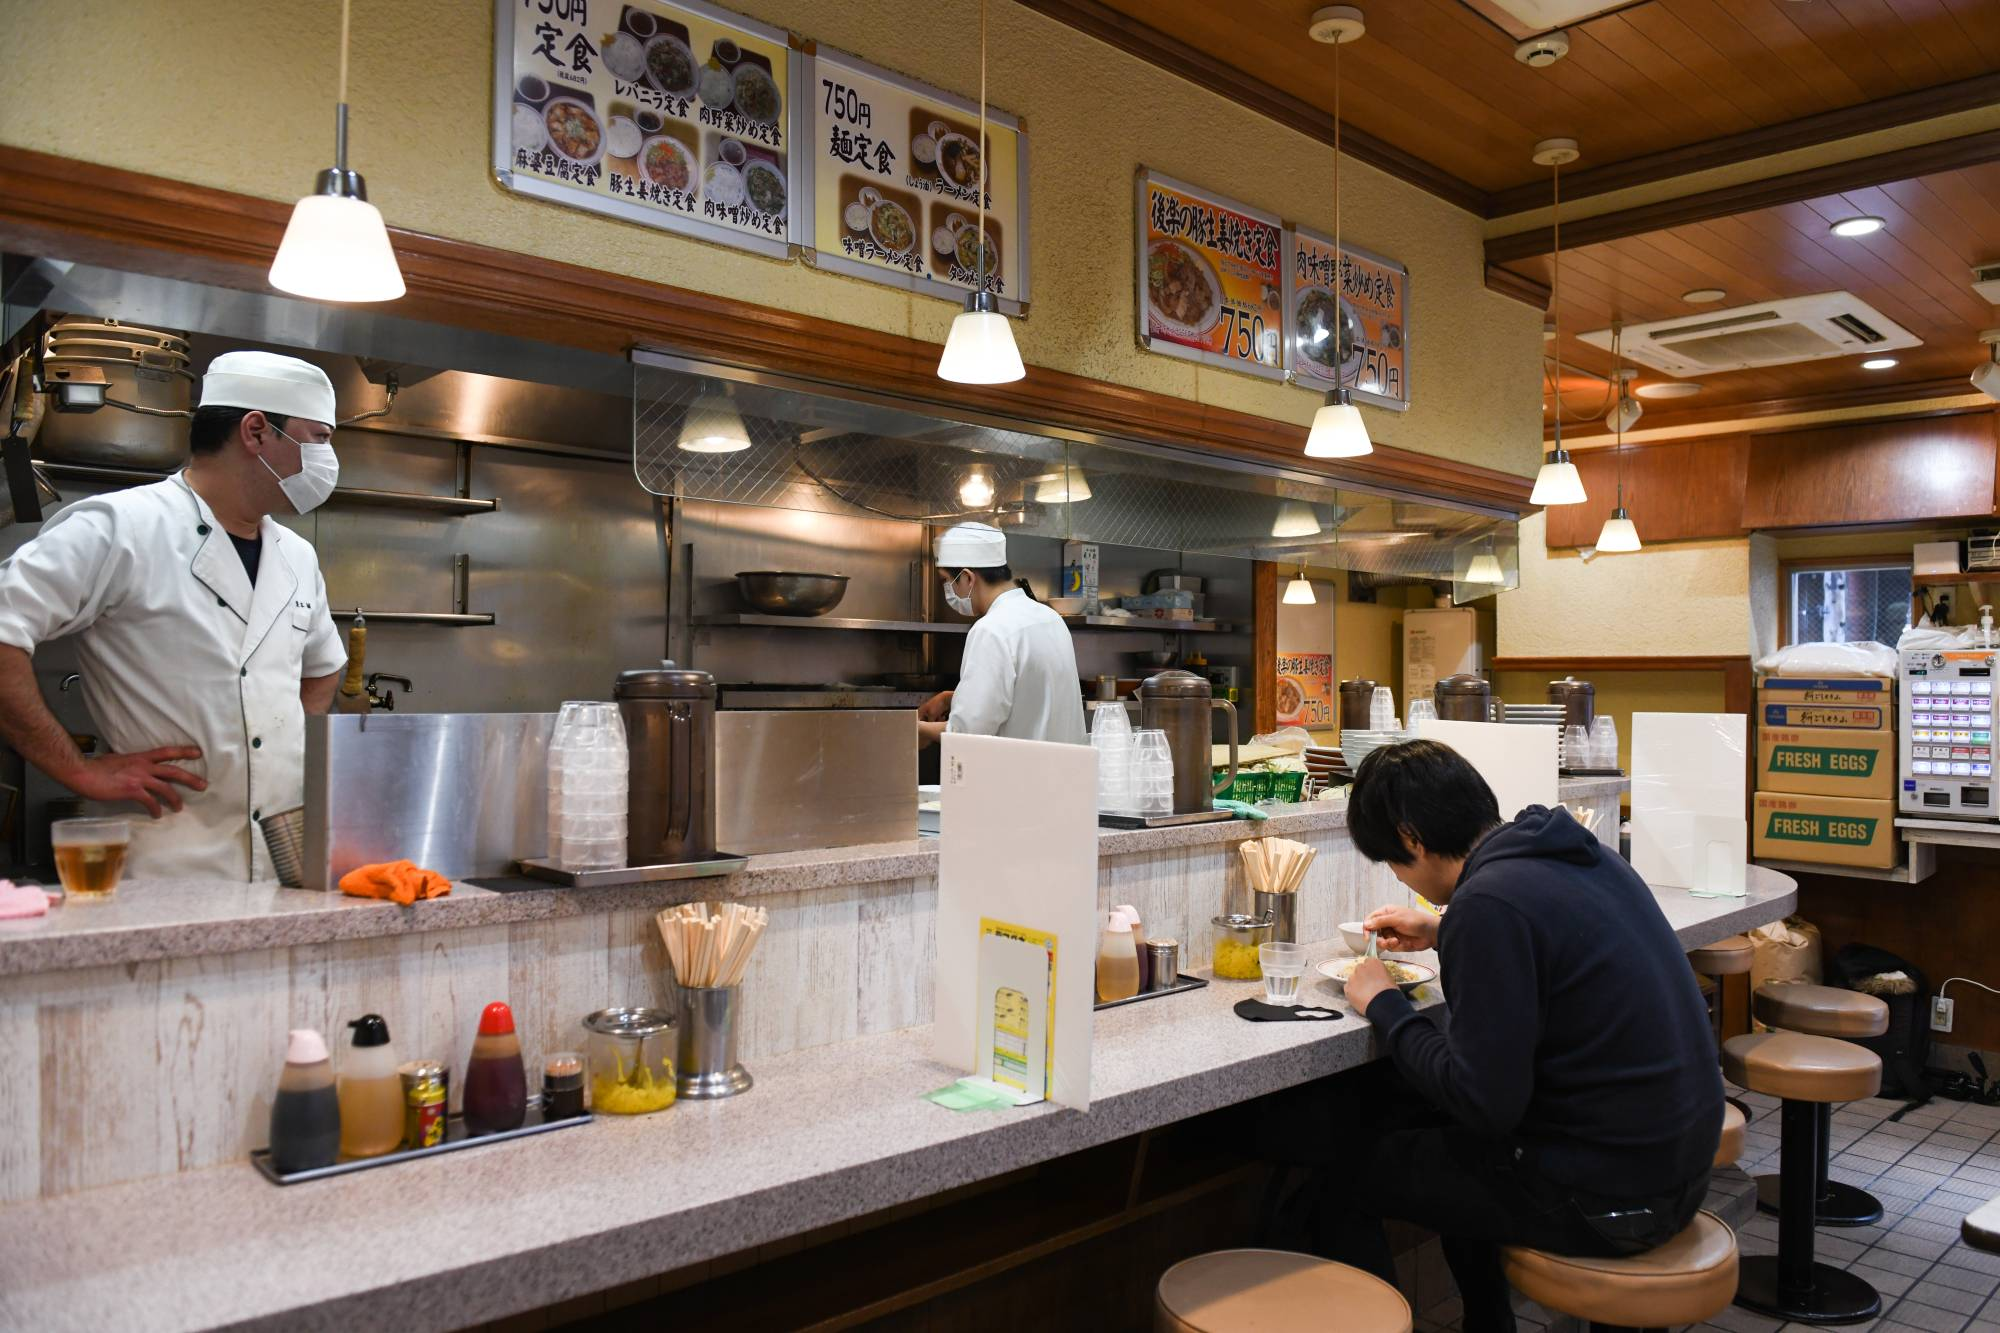 Ramen King Kouraku Honpo noodle store in Tokyo. Small restaurants operators like Kouraku Honpo are among the businesses hardest hit by the COVID-19 pandemic as they struggle to price in social-distancing limitations on capacity. | BLOOMBERG